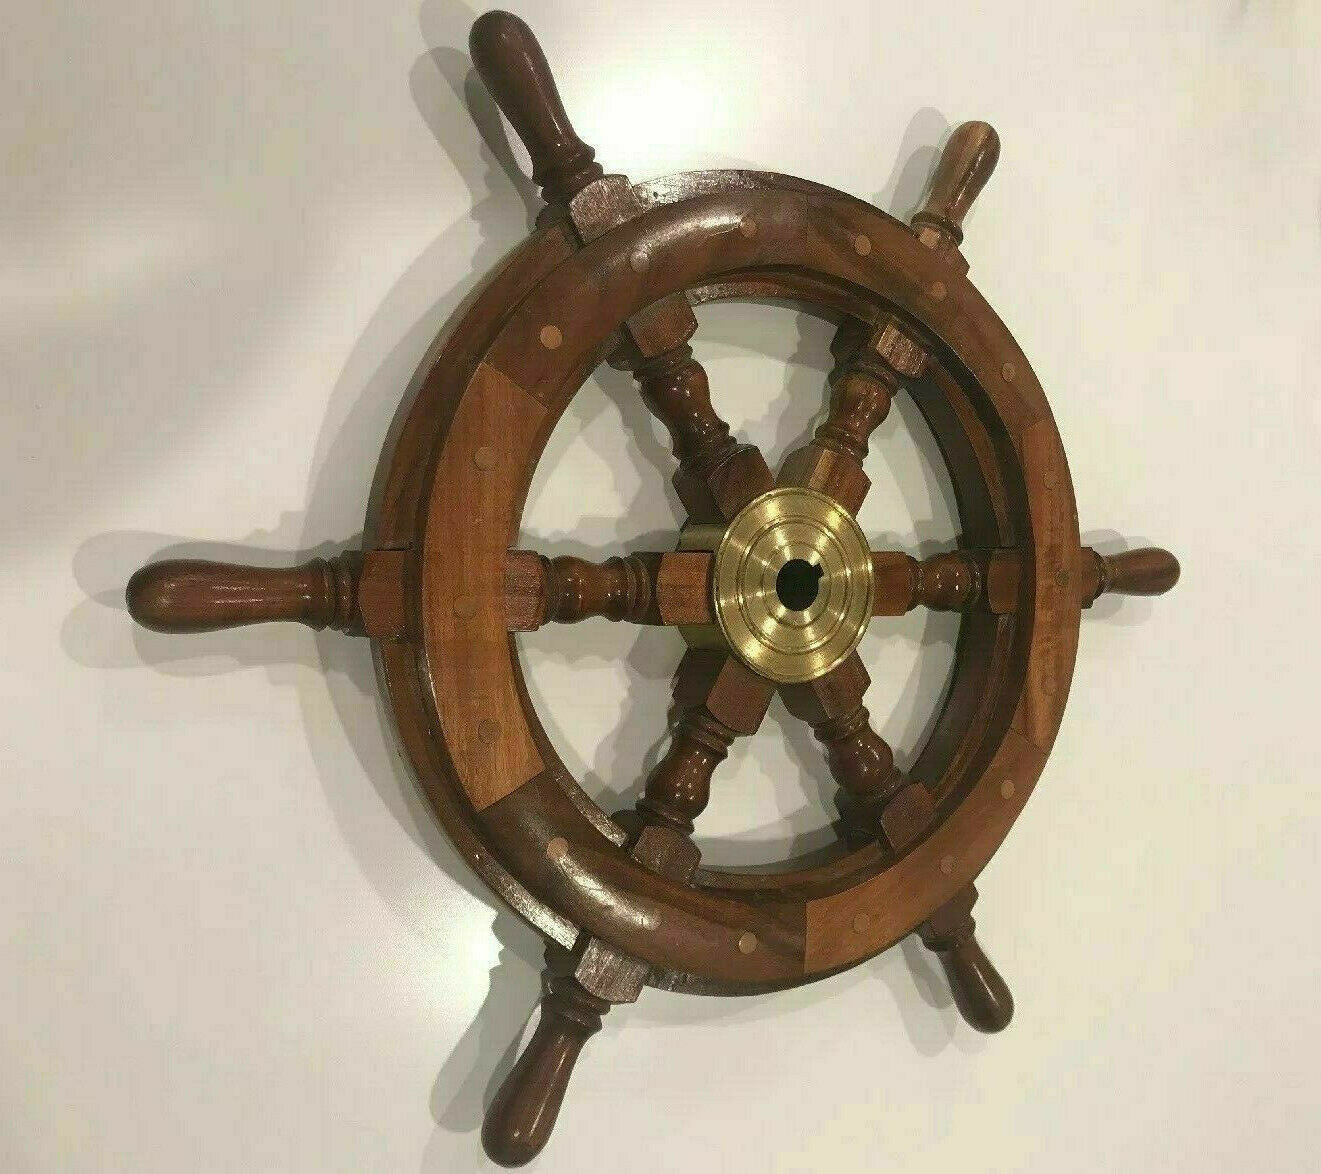 Collectible Maritime Nautical Boat Wooden Ship Wheel 18